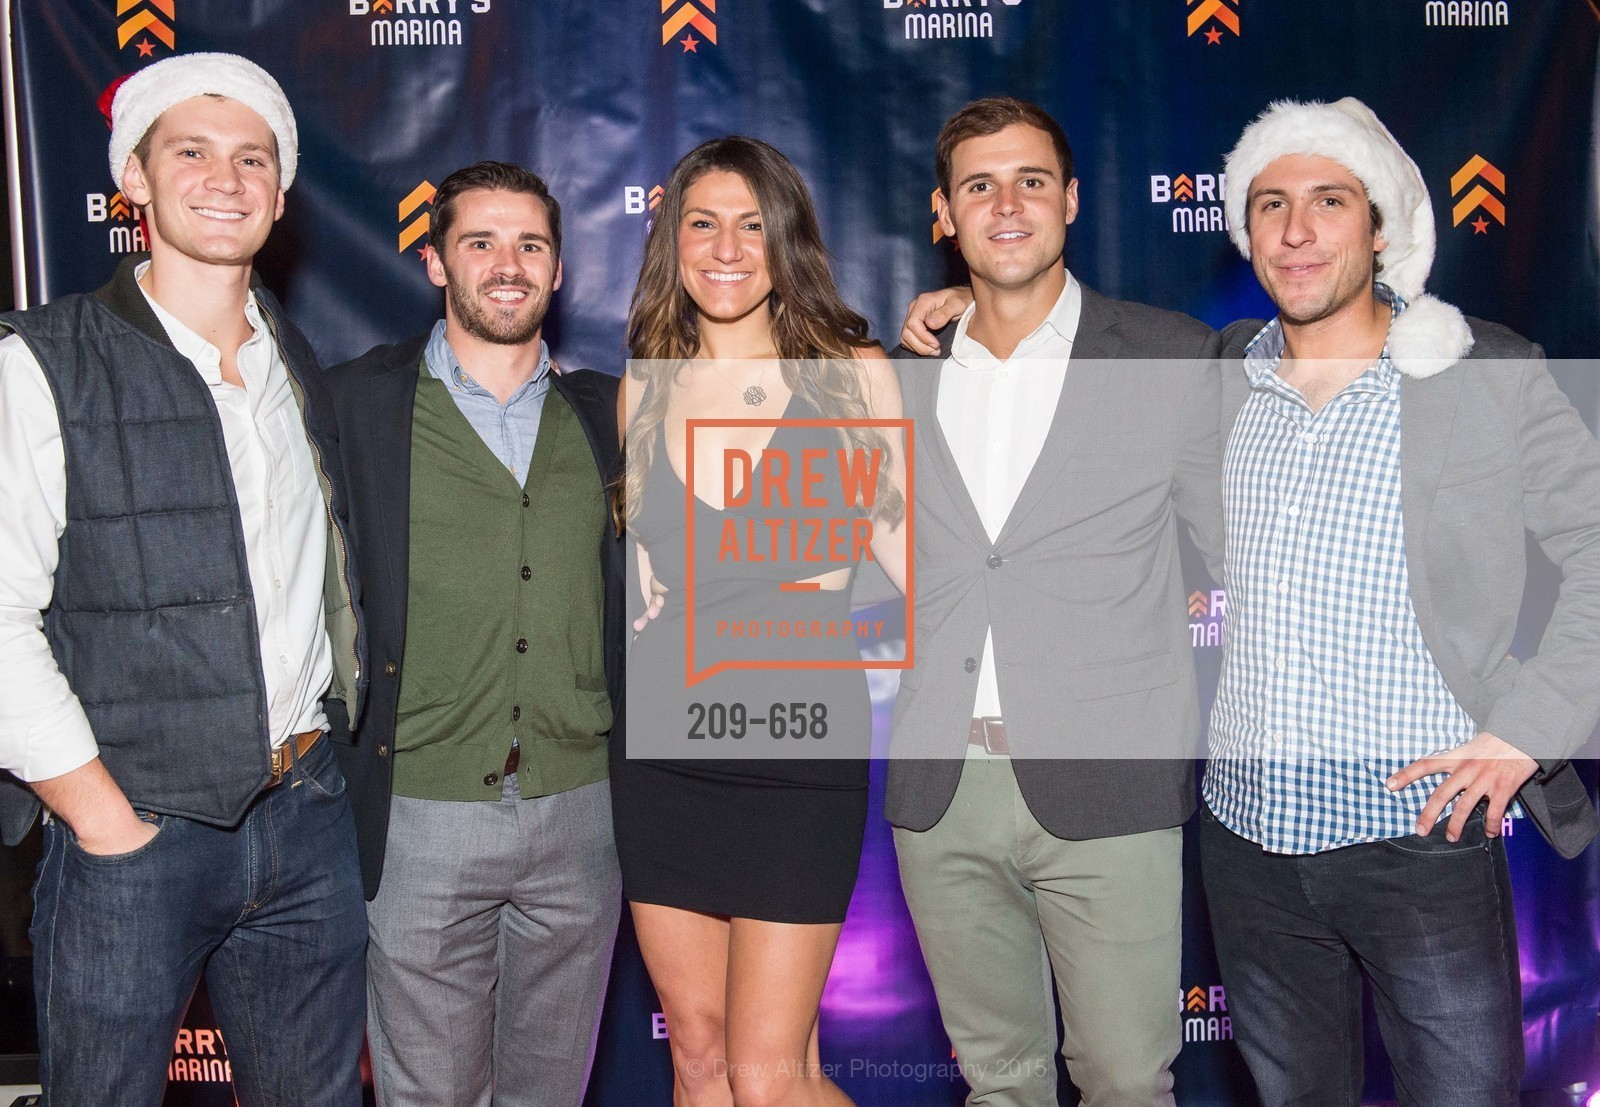 Michael Thomas, Andrew Timeier, Madison Stein, Corey Warzola, Scott Baseck, Barry's Marina Opening, Barry's. 2246 Lombard Street, December 17th, 2015,Drew Altizer, Drew Altizer Photography, full-service agency, private events, San Francisco photographer, photographer california